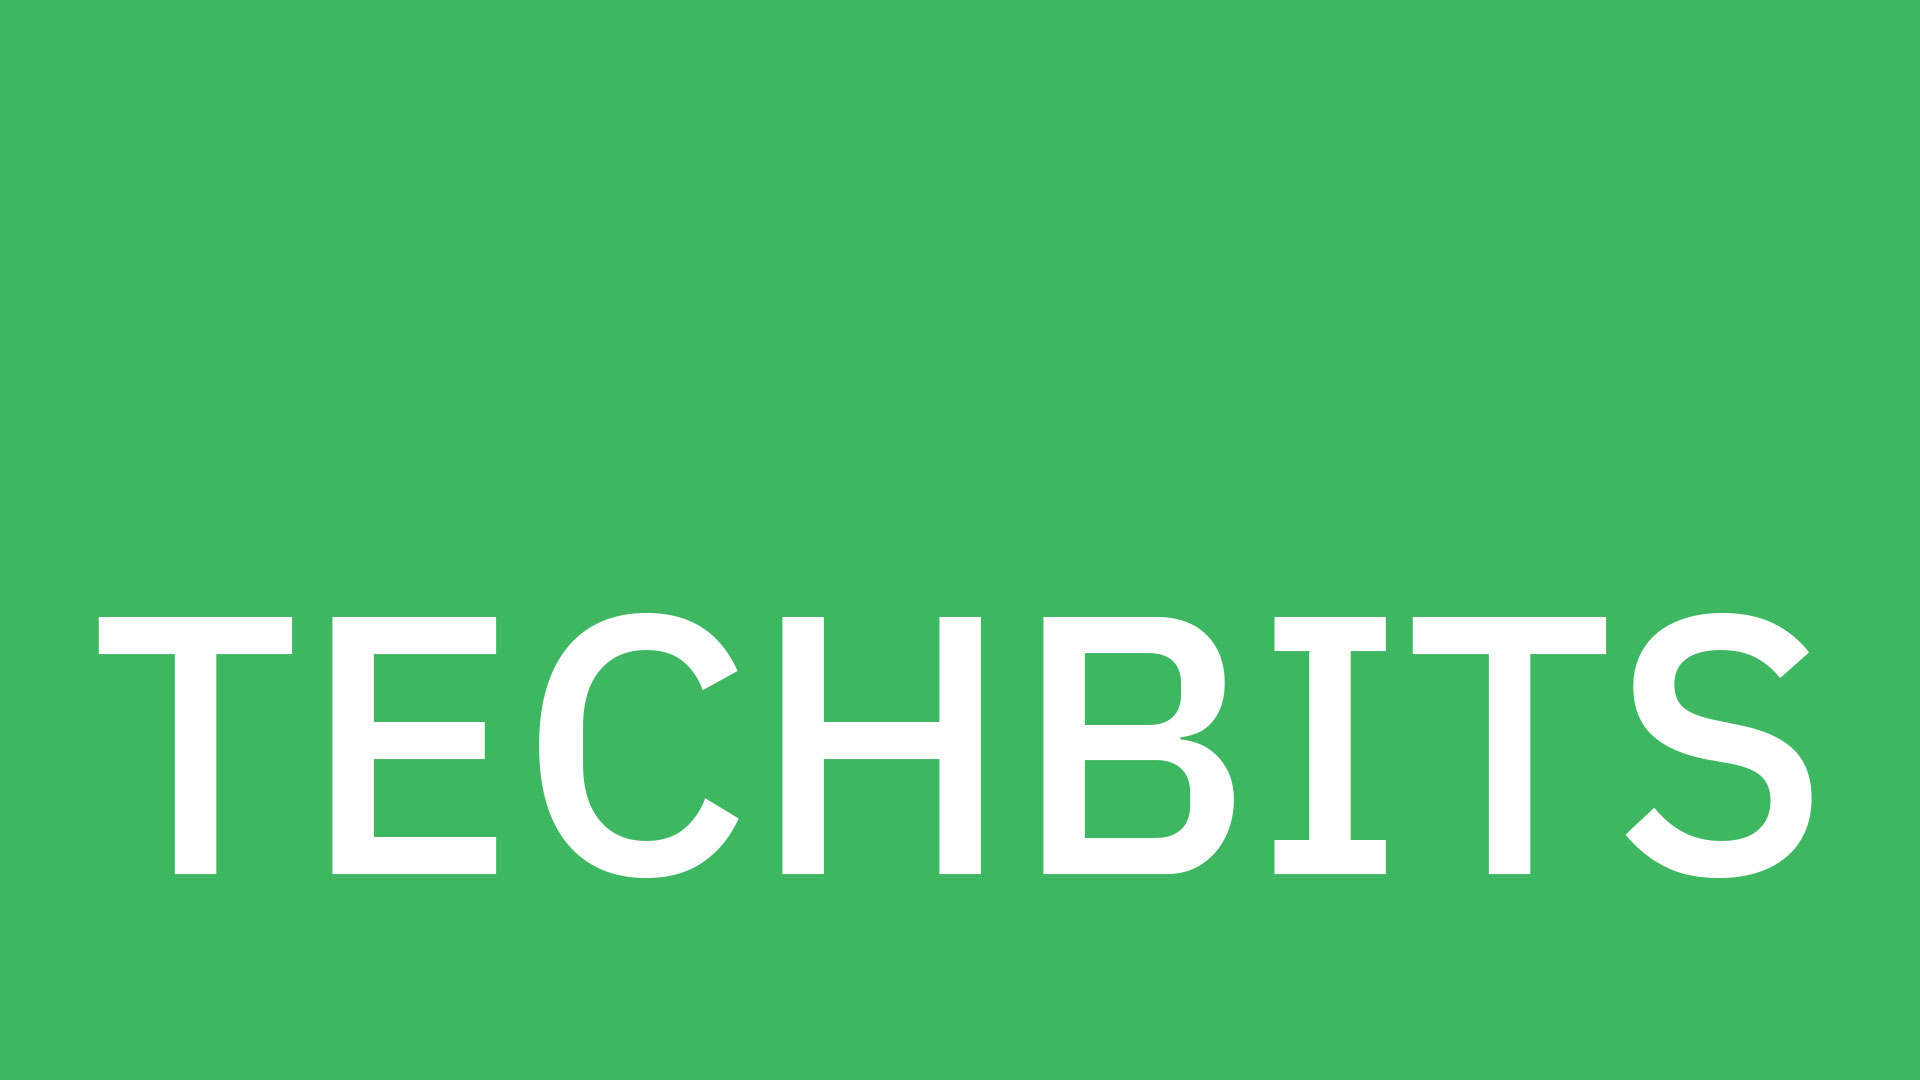 Techbits in white type against a green background.